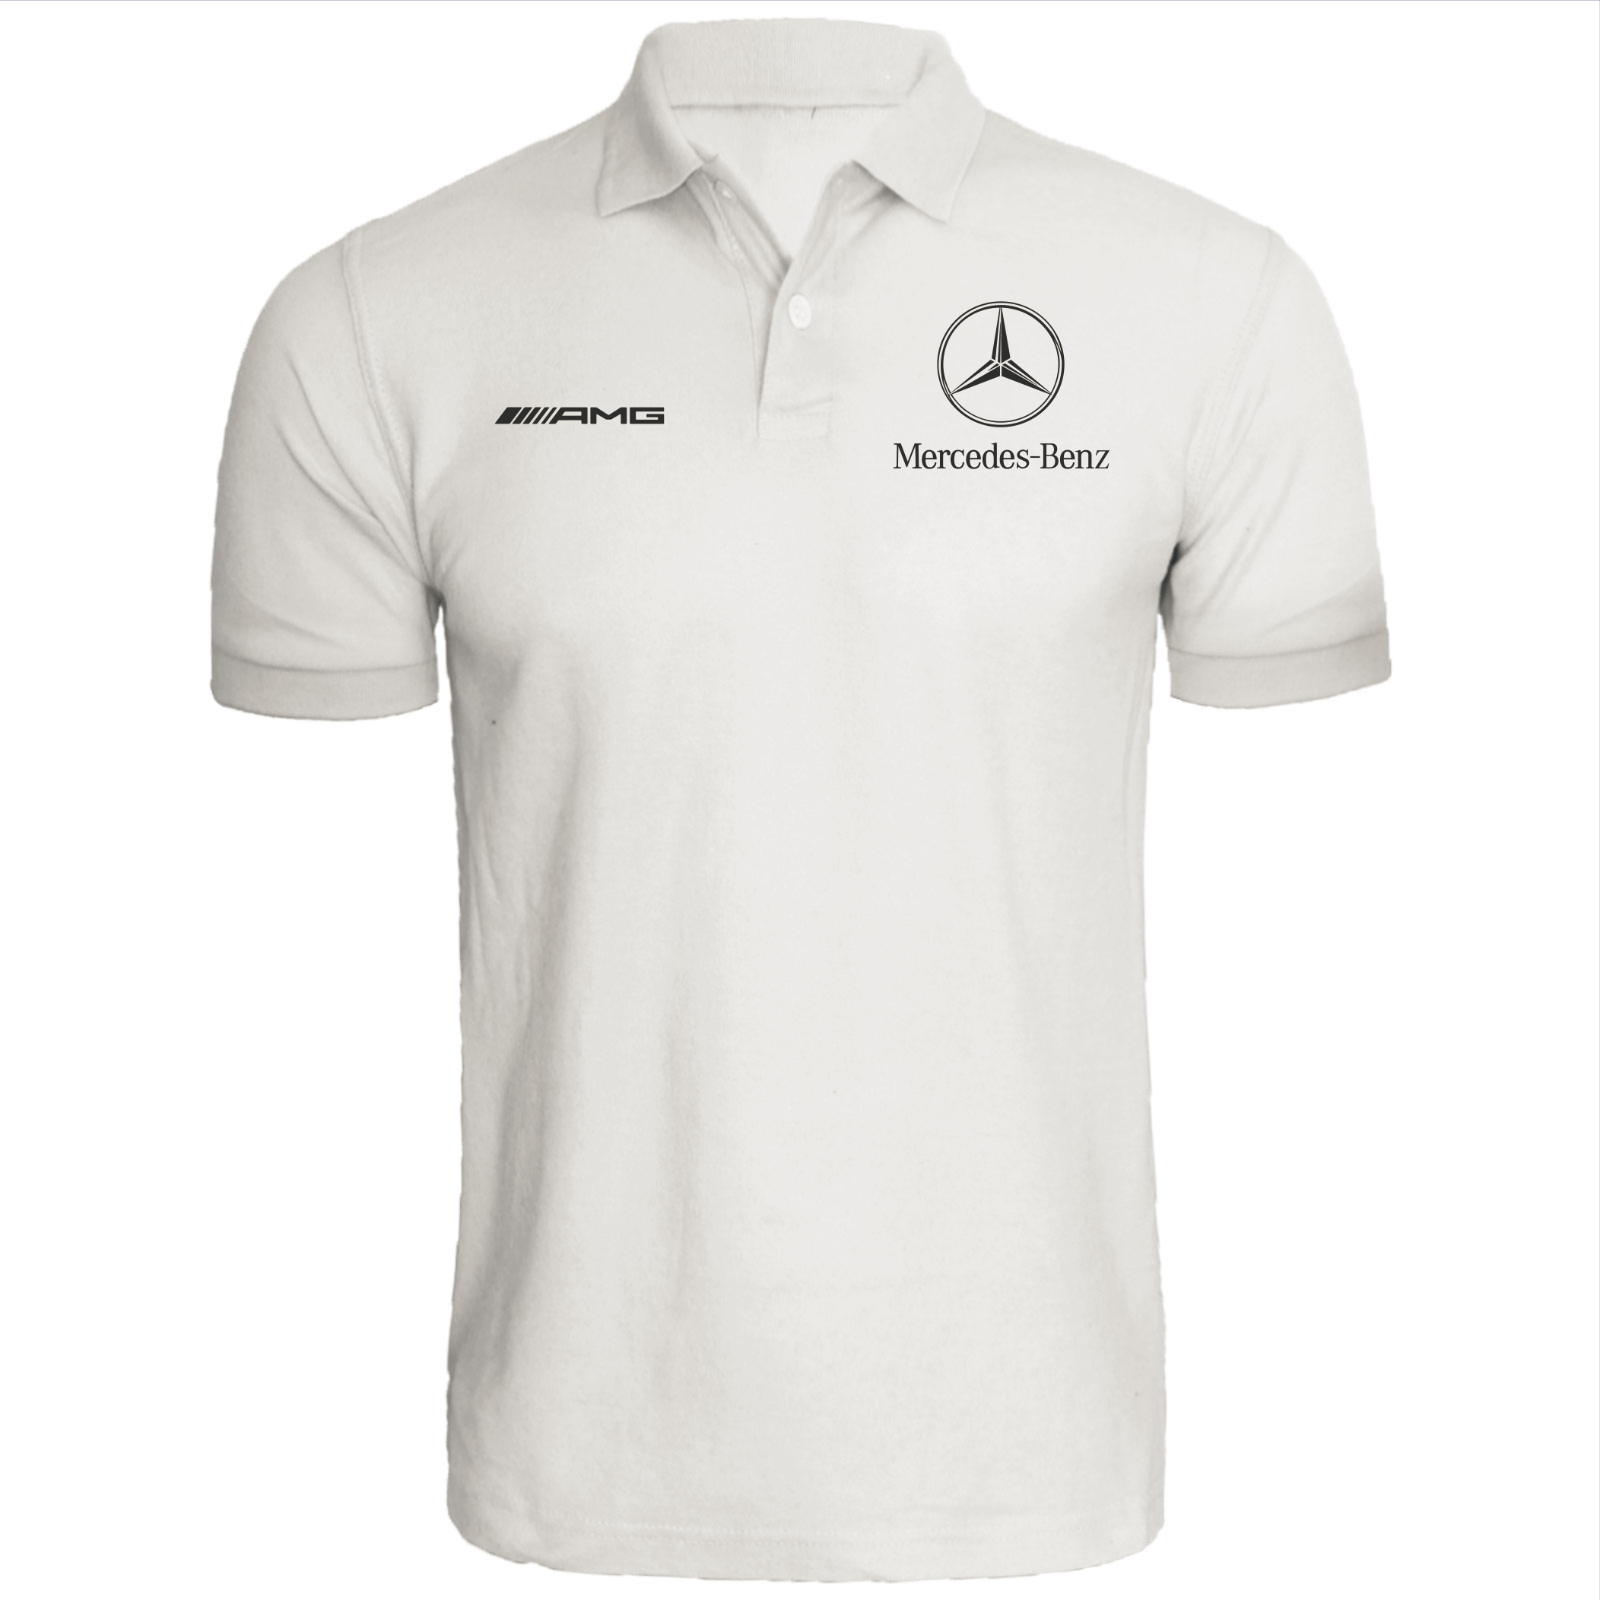 cc226c4f Awesome Great Mercedes Benz Polo shirt * AMG * automotive * racing * DTM *  QUALITY